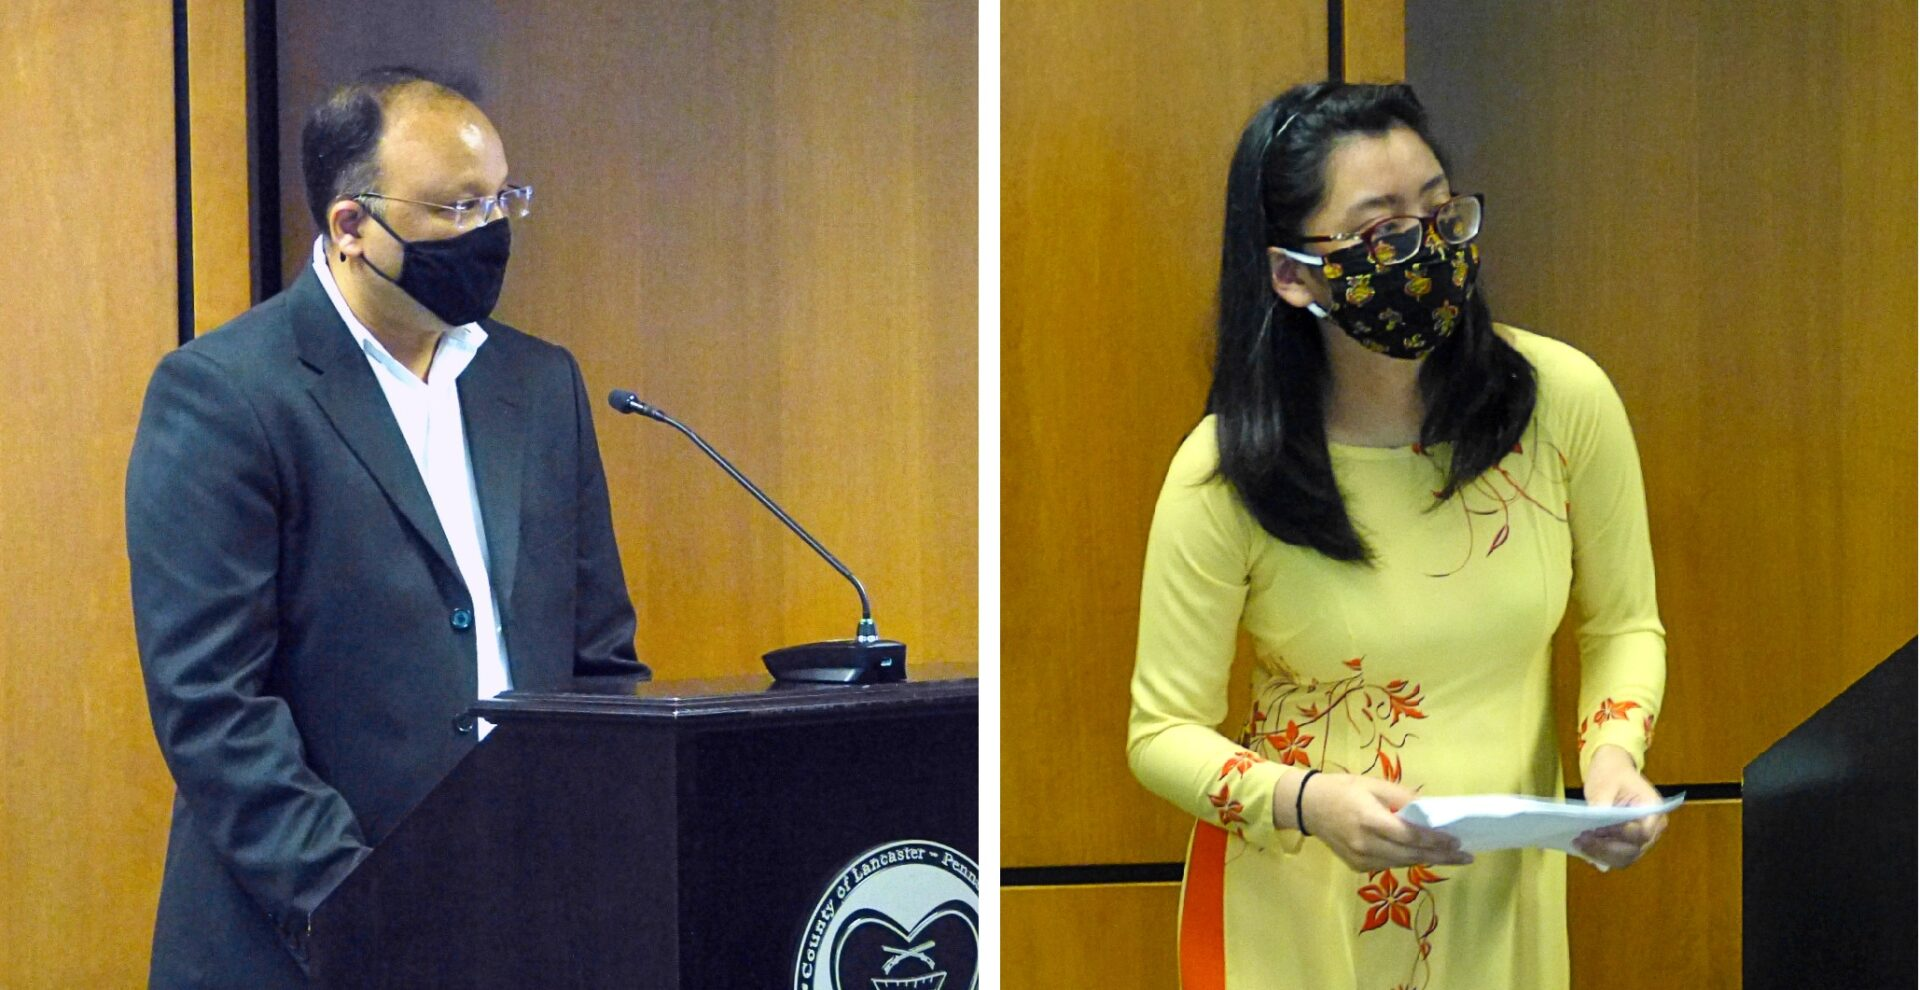 Manish Jhunjhunwala, president, South Asian Association of Lancaster; and Julia Cao, community organizer, speak about Asian-American Pacific Islander Heritage Month at the Lancaster County commissioners meeting on Wednesday, May 5, 2021. (Photo: Tim Stuhldreher)